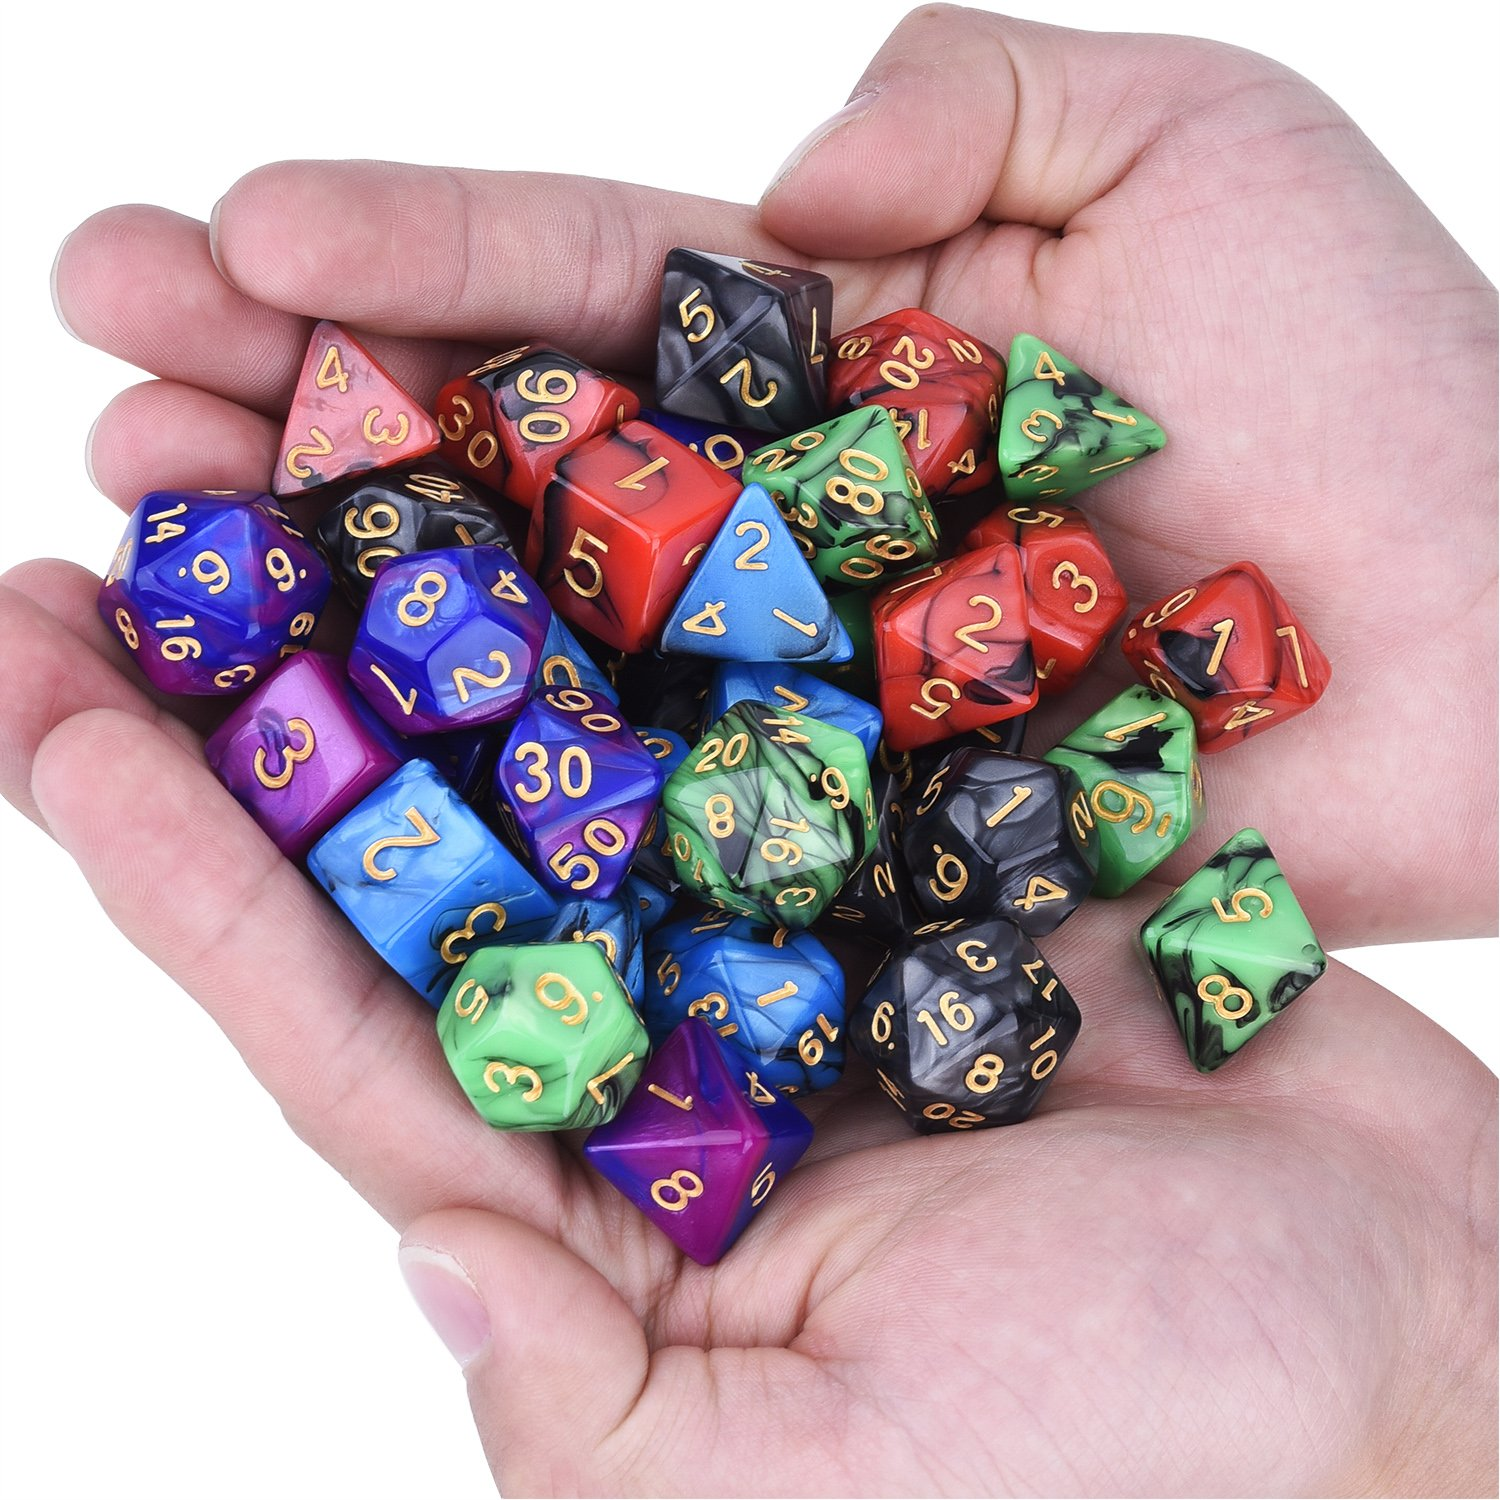 eBoot 35 Pieces Polyhedral Dice Double-Colors Polyhedral Game Dice for RPG Dungeons and Dragons Pathfinder with 5 Pack Black Pouches, 5 Sets of d20, d12, 2 d10 /(00-90 and 0-9/), d8, d6 and d4